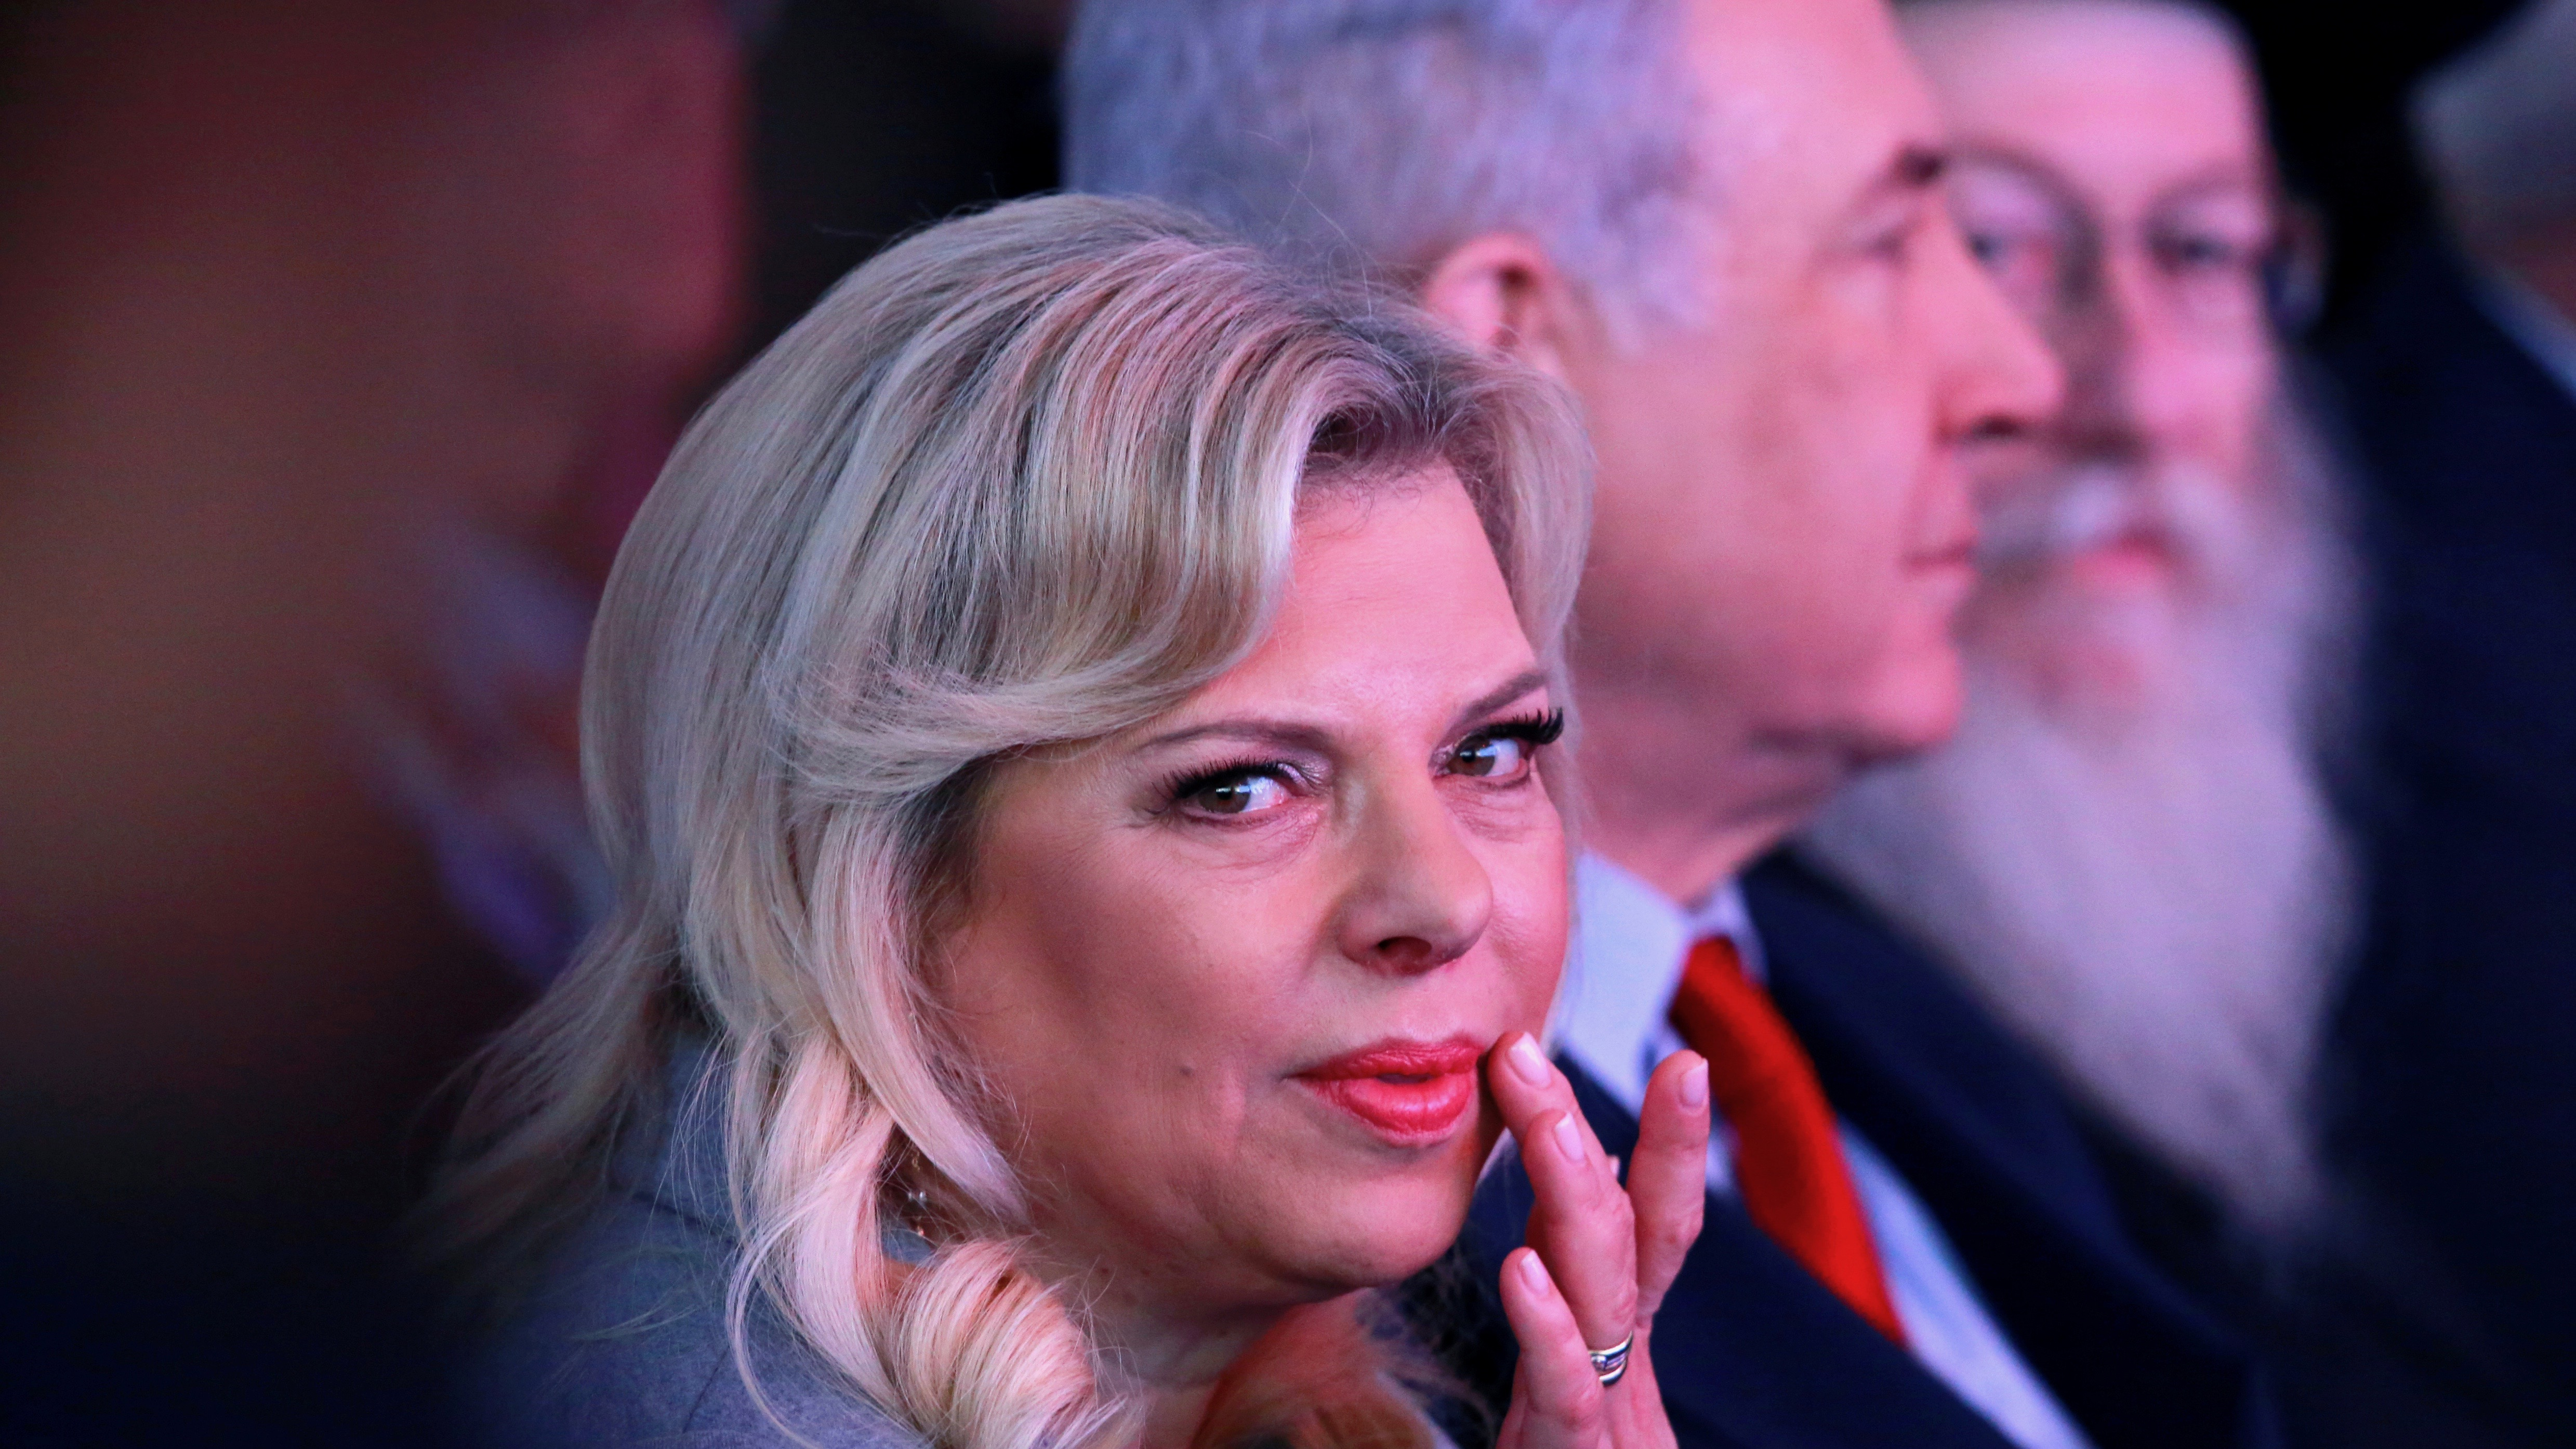 Sara Netanyahu with her husband in the background.